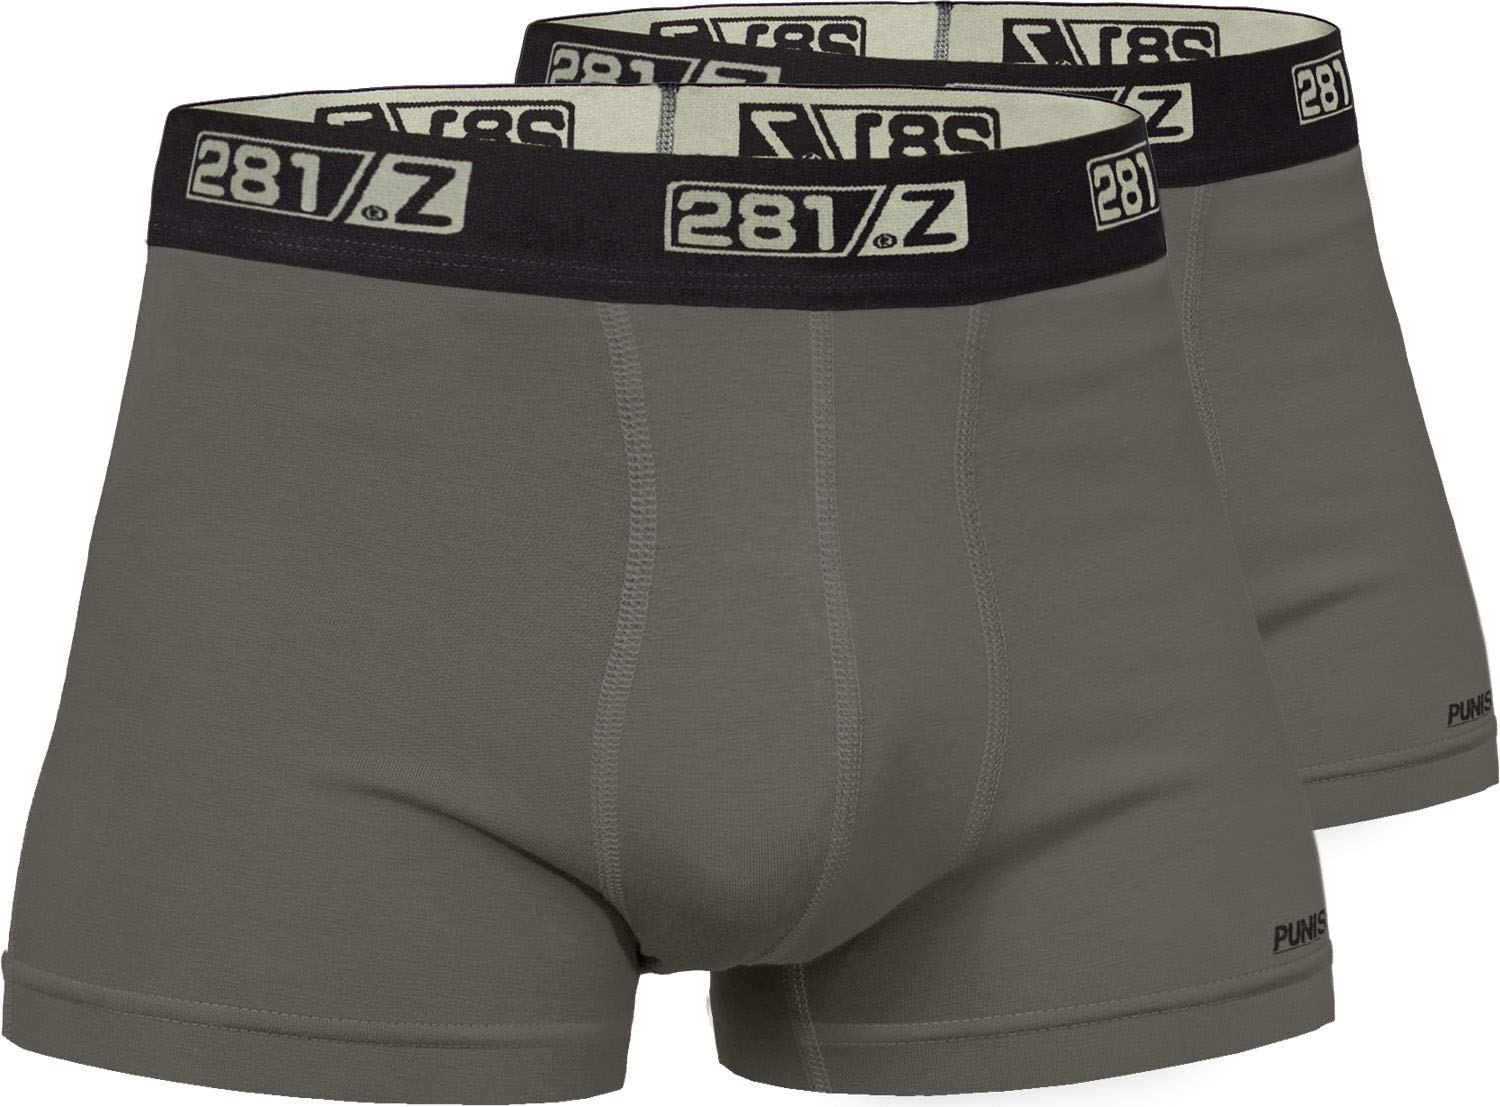 281Z Military Underwear Cotton 2-Inch Boxer Briefs - Tactical Hiking Outdoor - Punisher Combat Line (Large, Olive Drab (2 Pack))